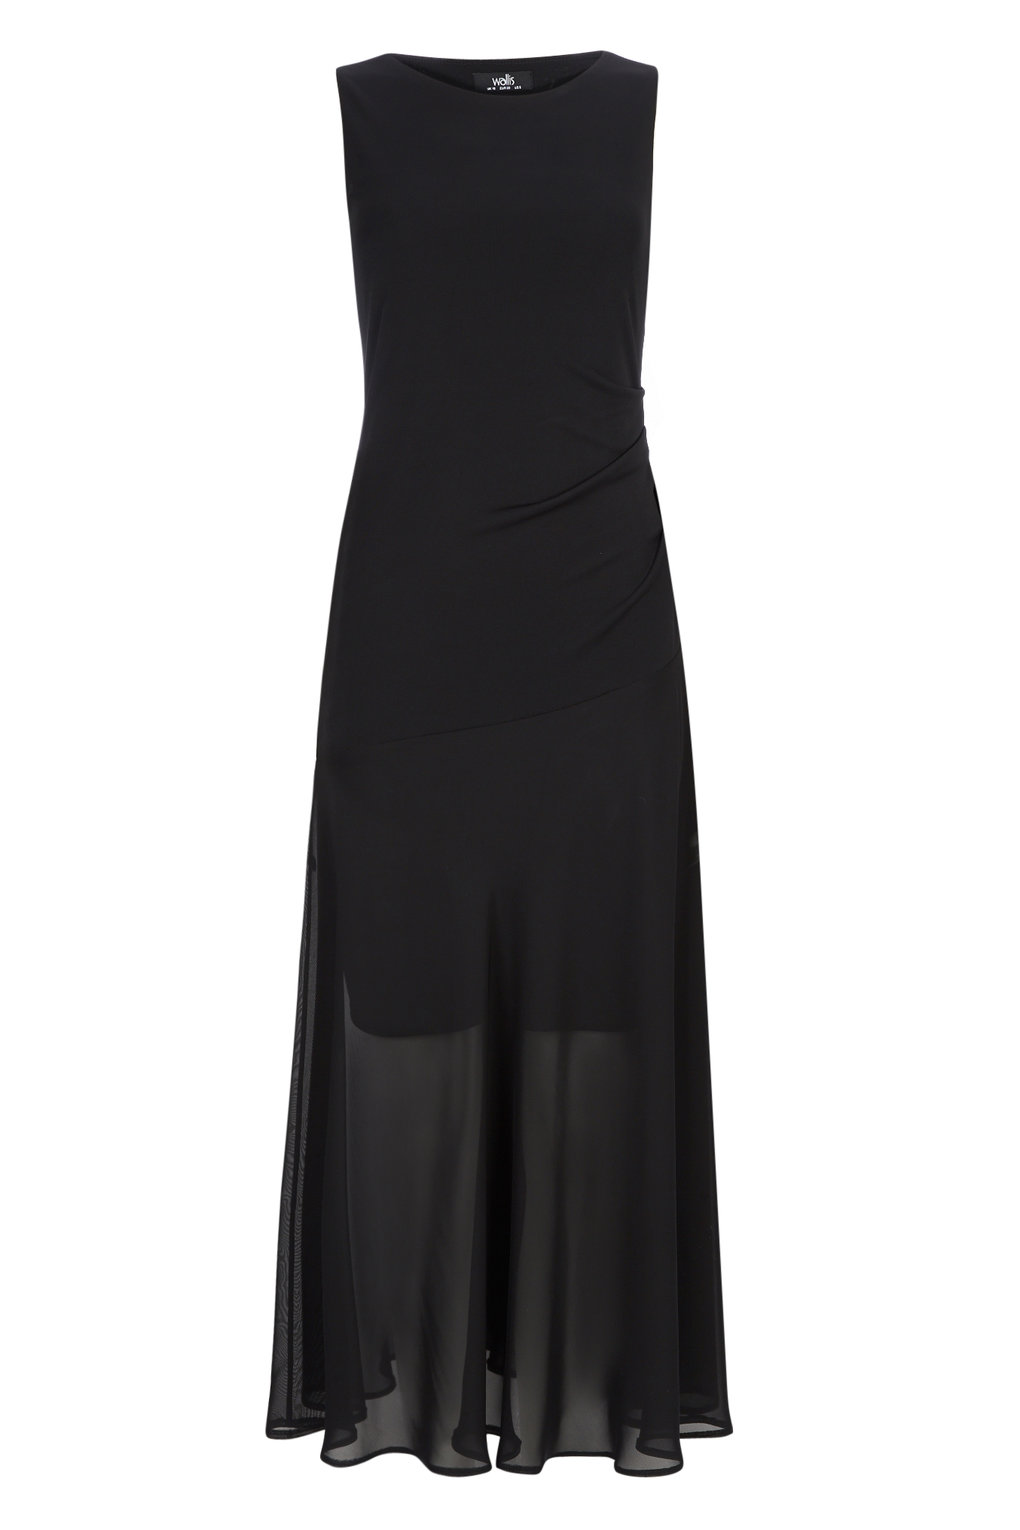 Wallis Full Length Black Chiffon Dress